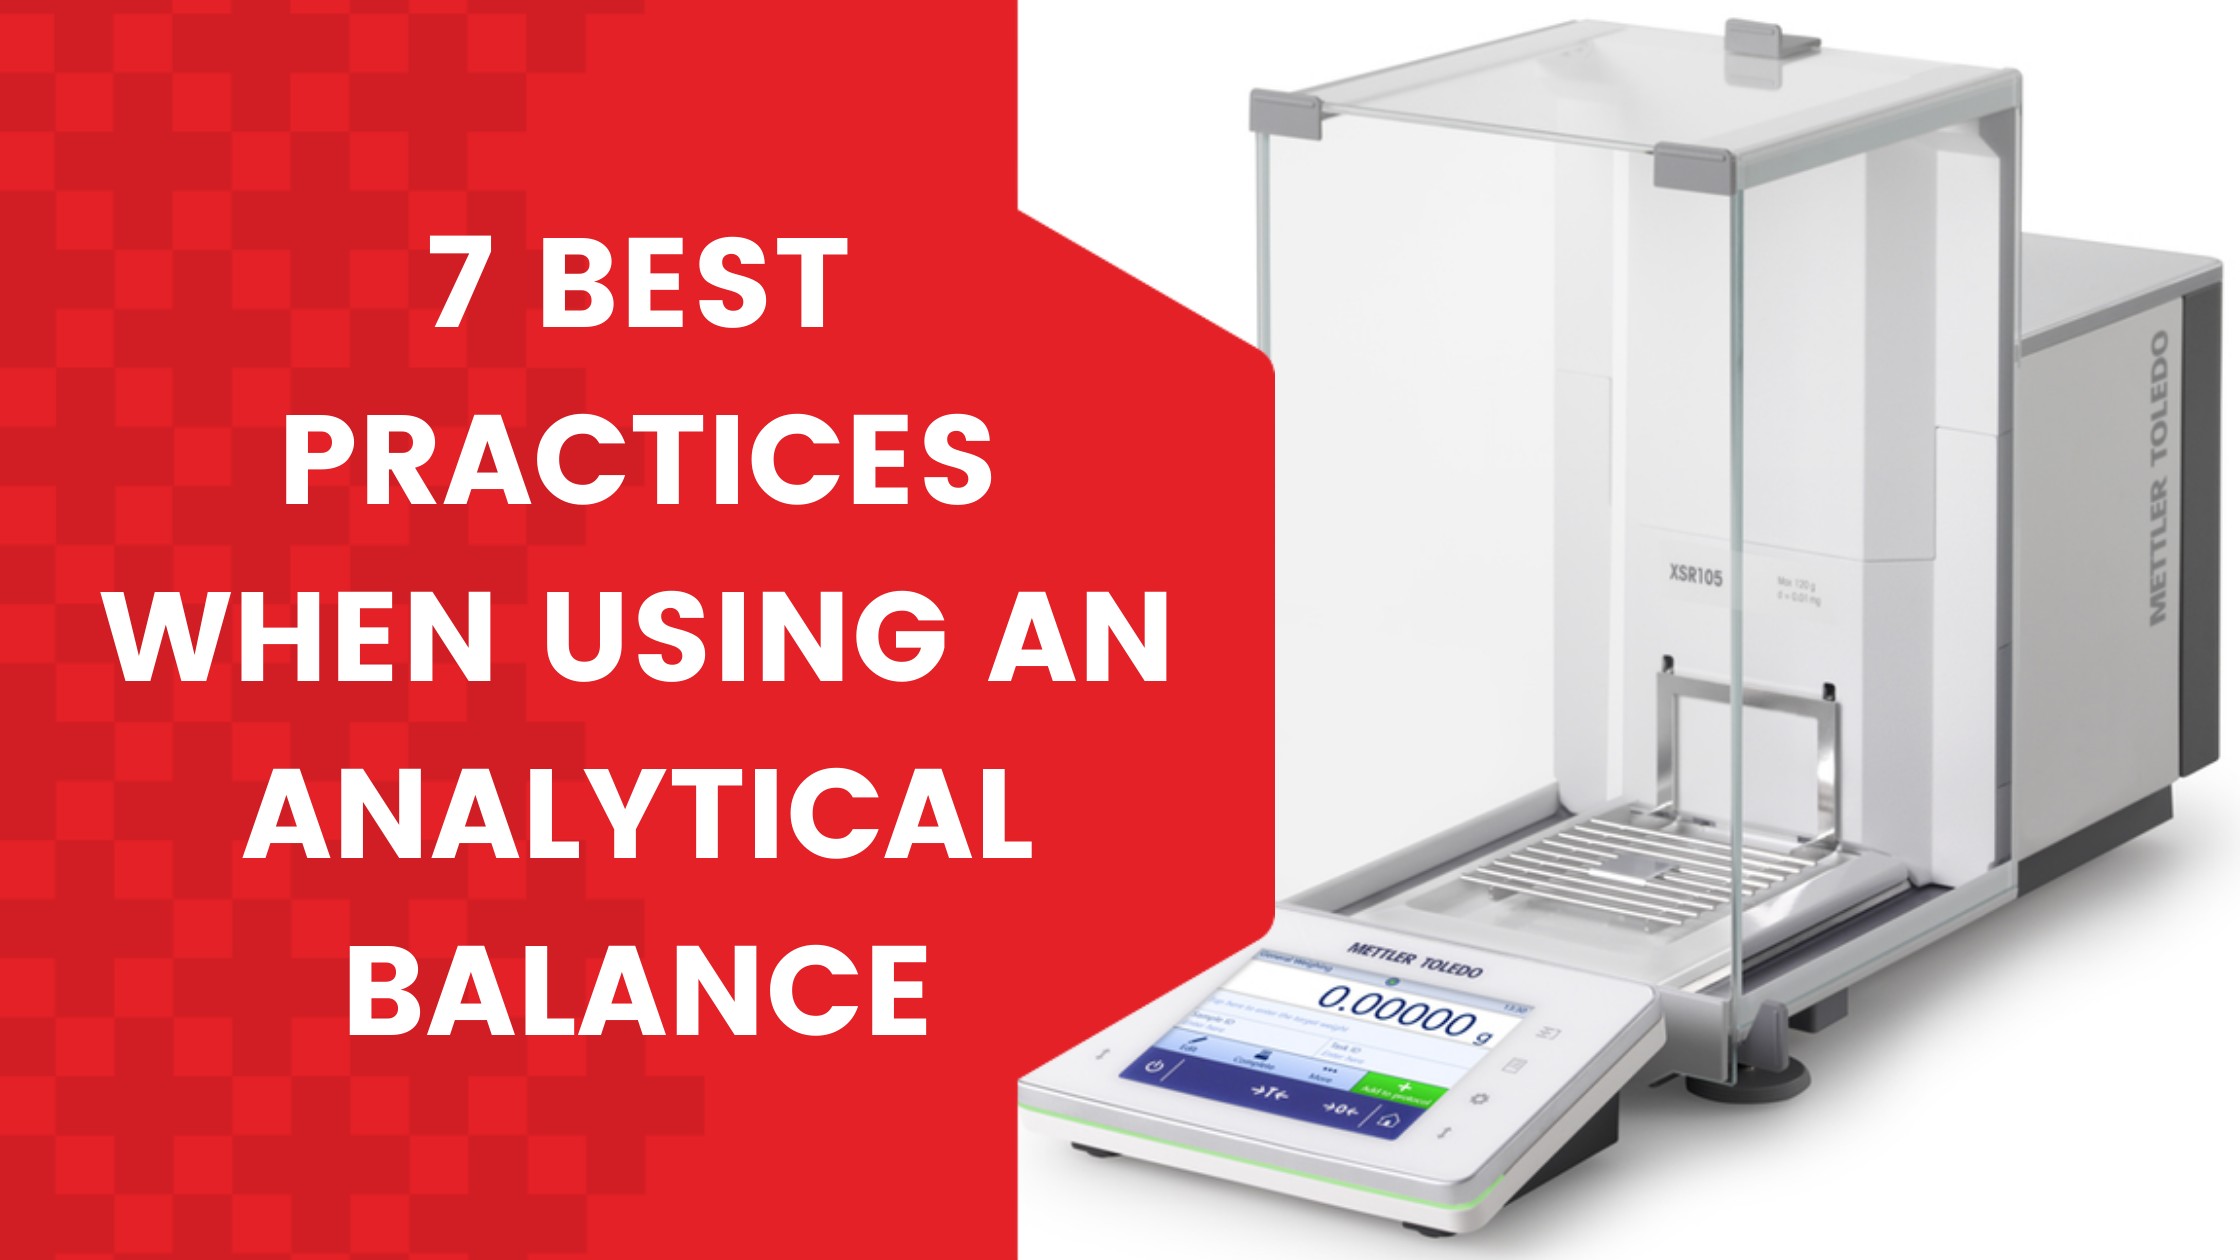 7 Best Practices When Using an Analytical Balance